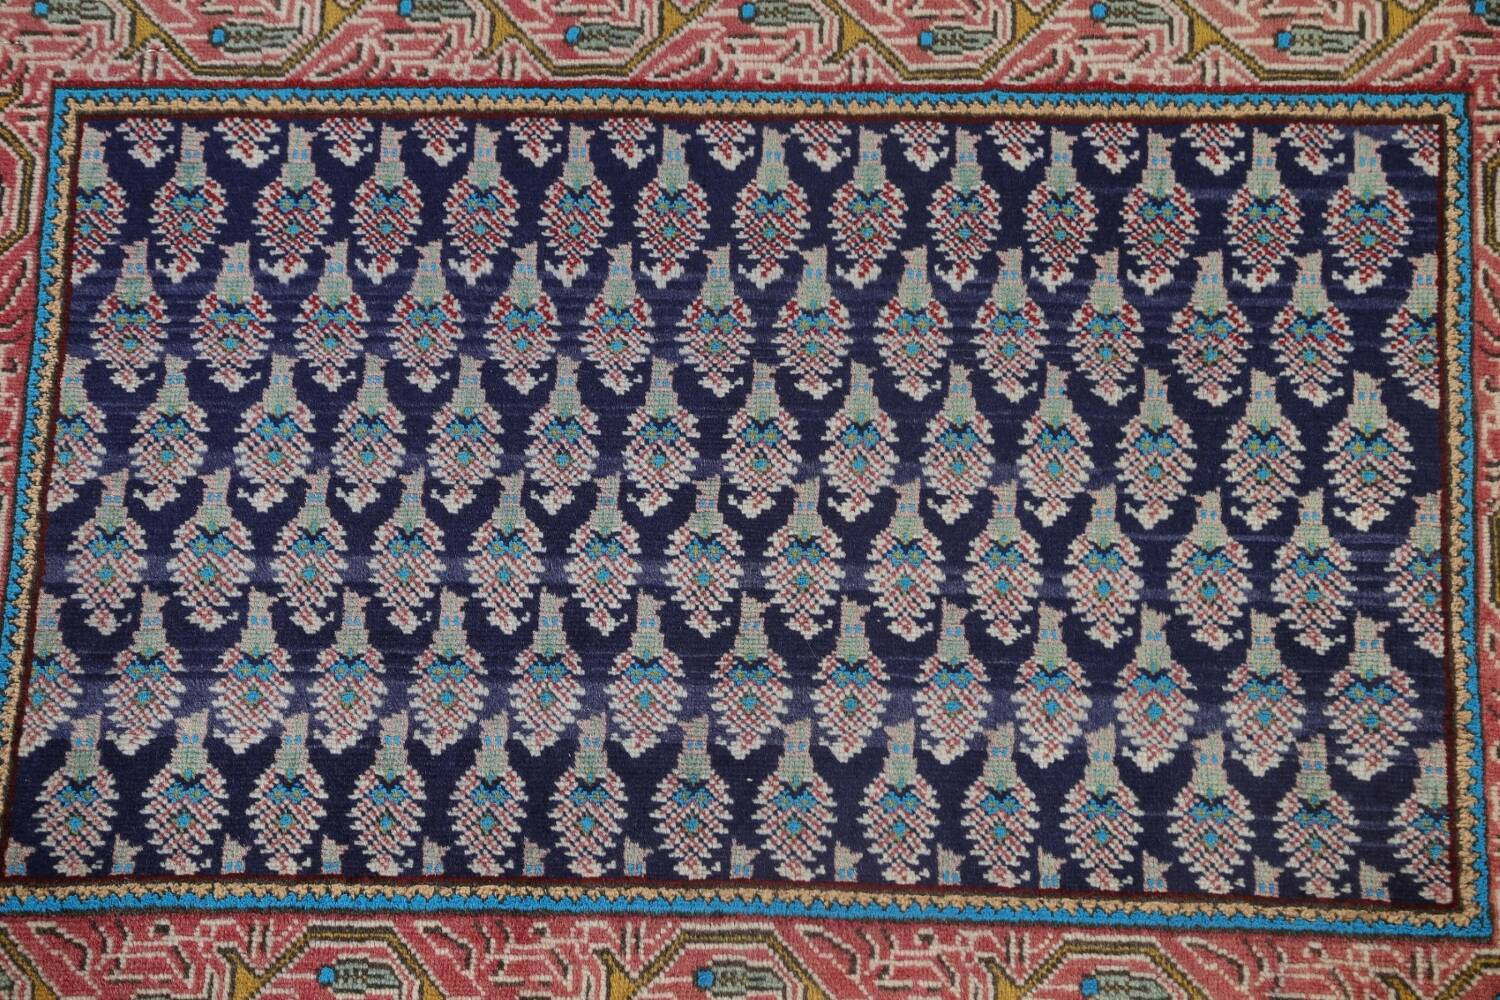 All-Over Navy Blue Tabriz Persian Area Rug 2x3 image 3